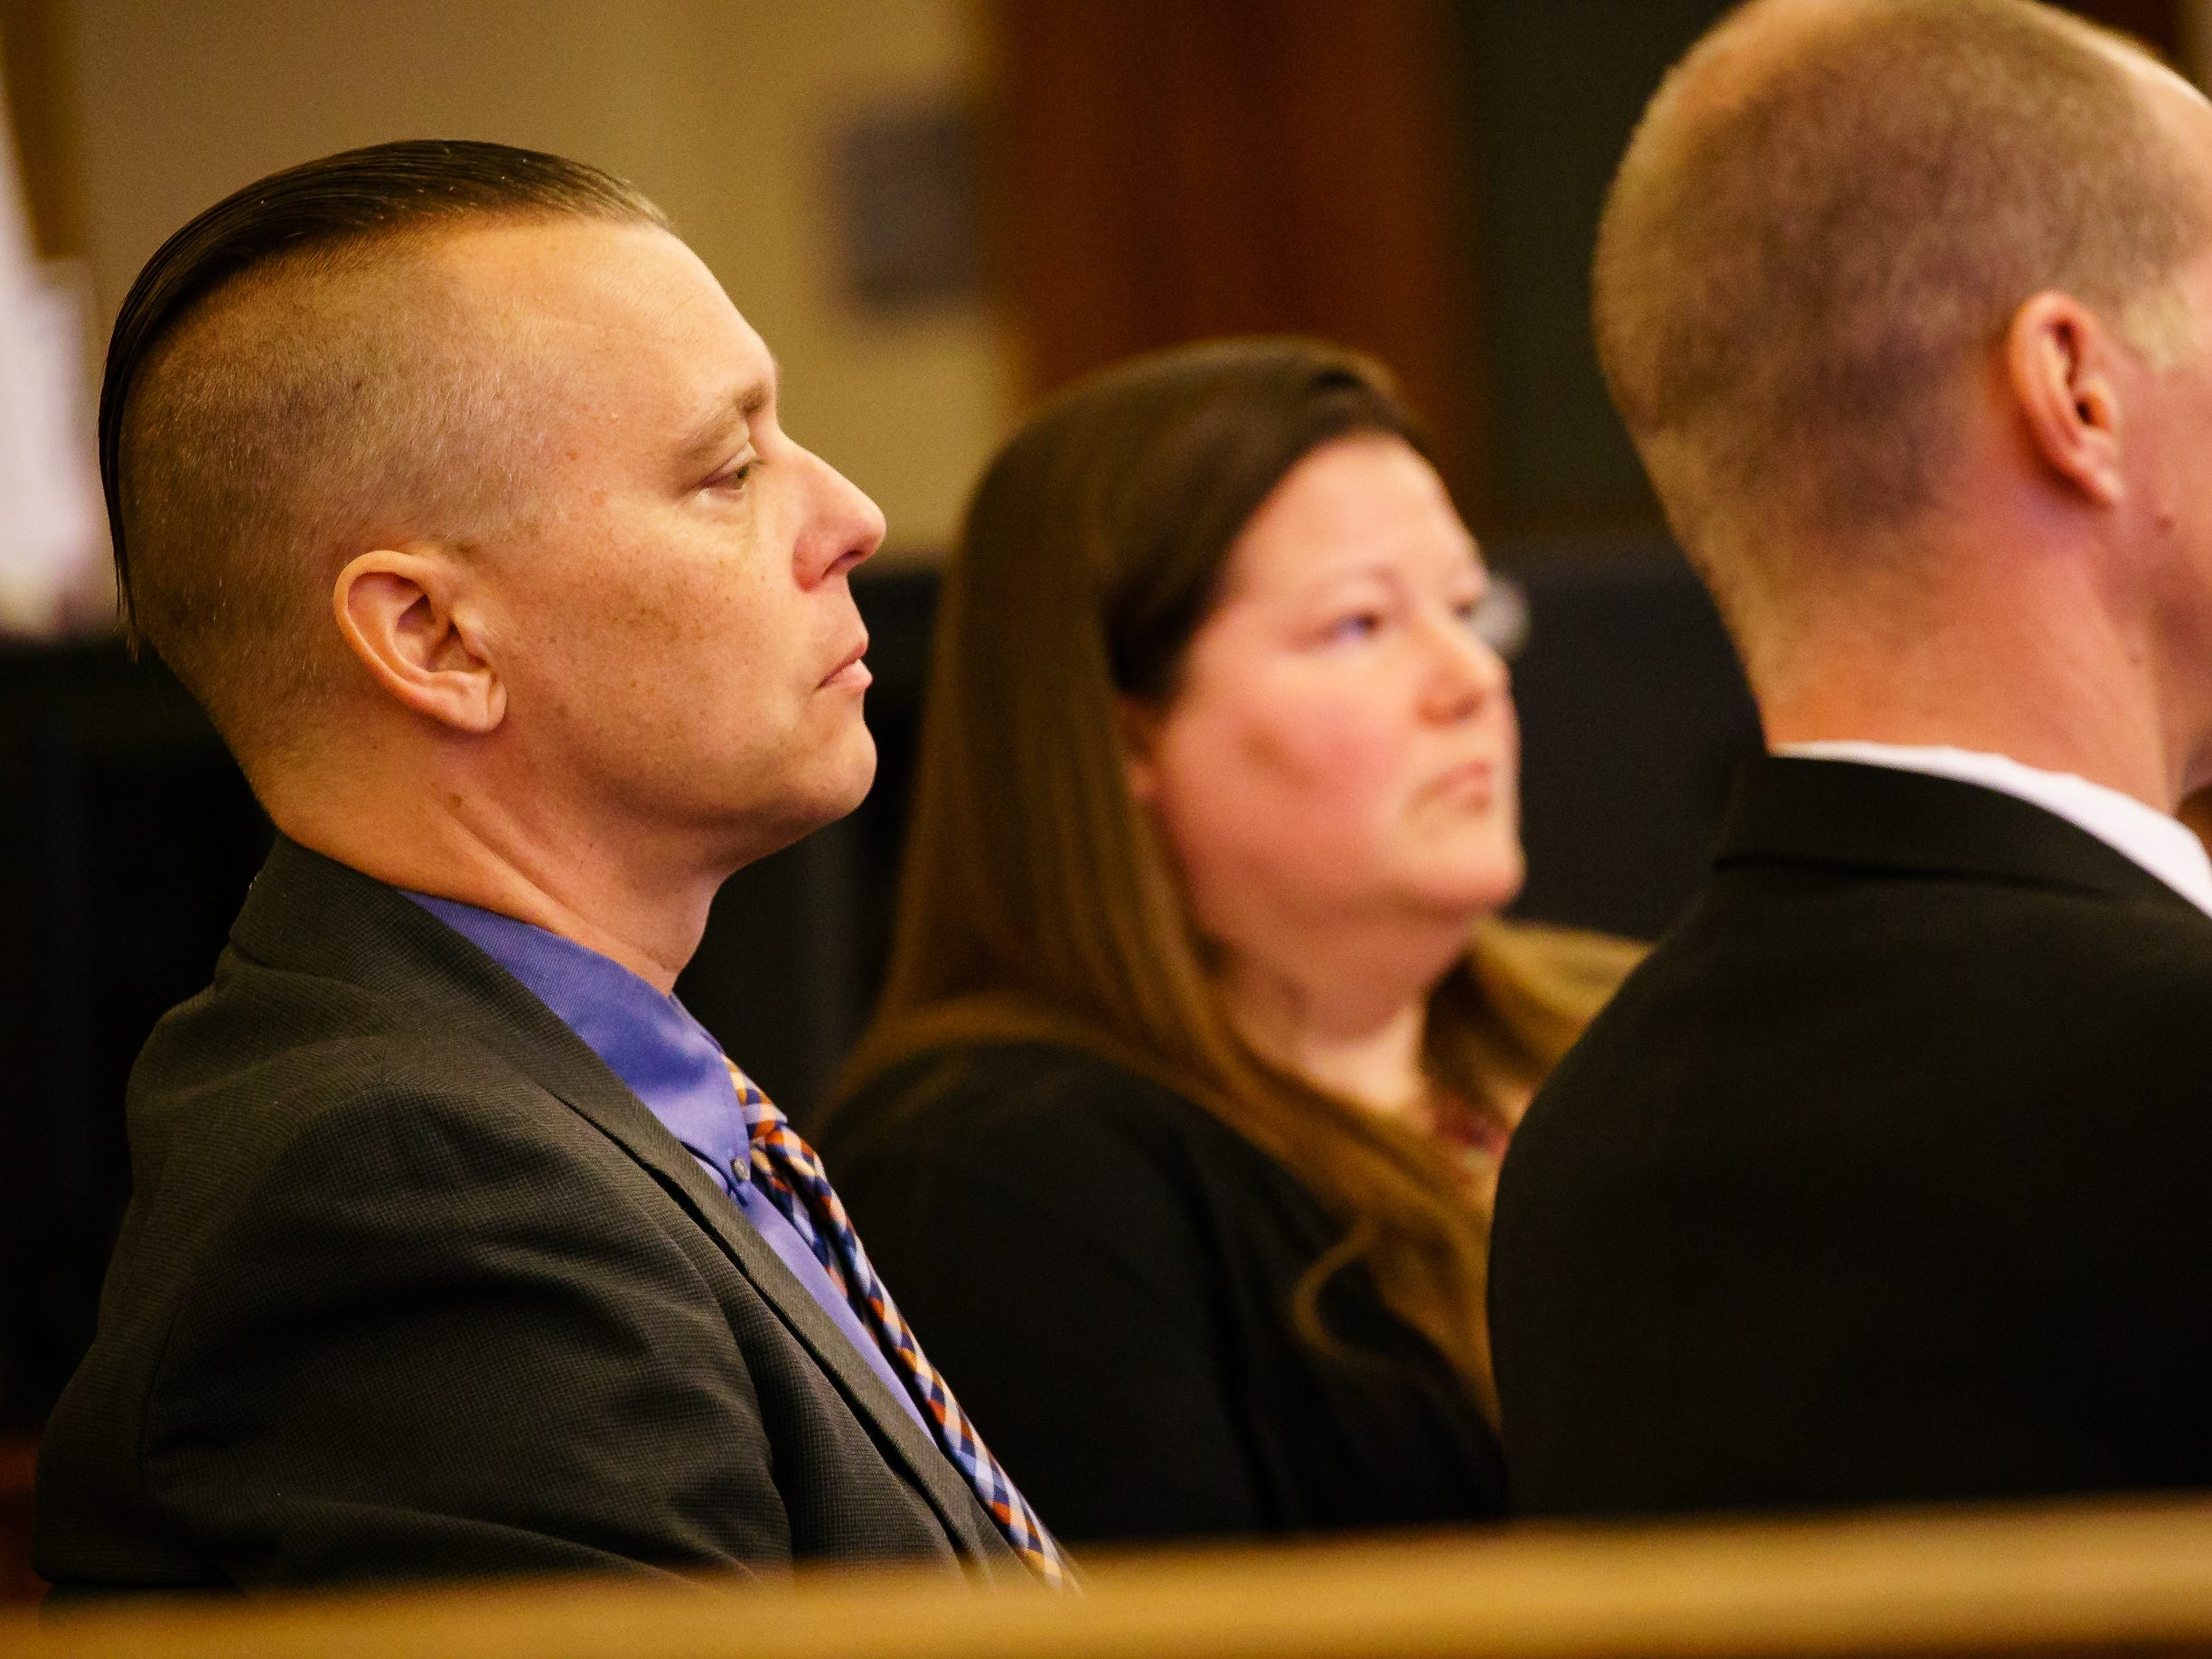 Troy Griffin, left, listens during his trial at the Dallas County Courthouse on Monday, Oct. 22, 2018, in Adel. Griffin's ex-wife Gina Battani accused him of raping her repeatedly during their marriage, but a jury found Griffin not guilty of all charges.